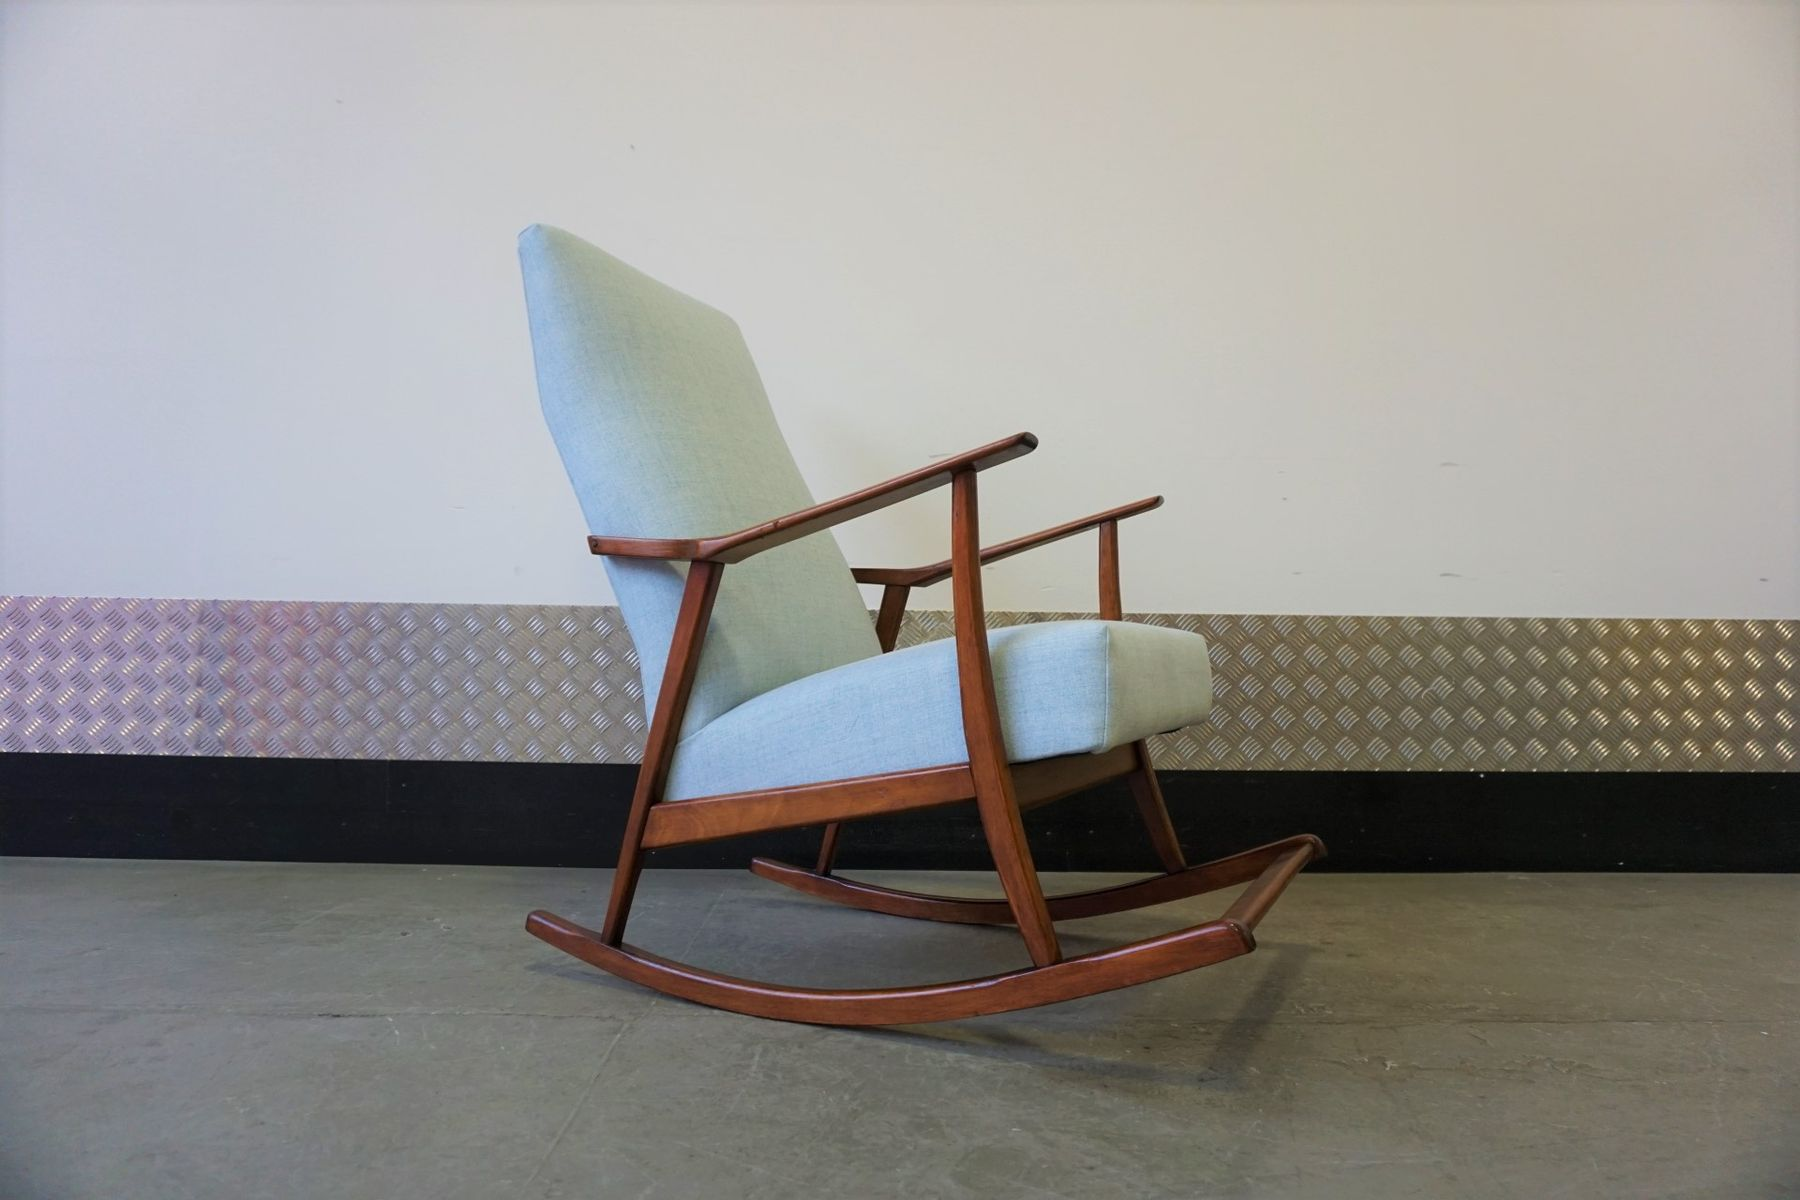 century by wanscher n france mid s ole for fd in teak rocking son chair